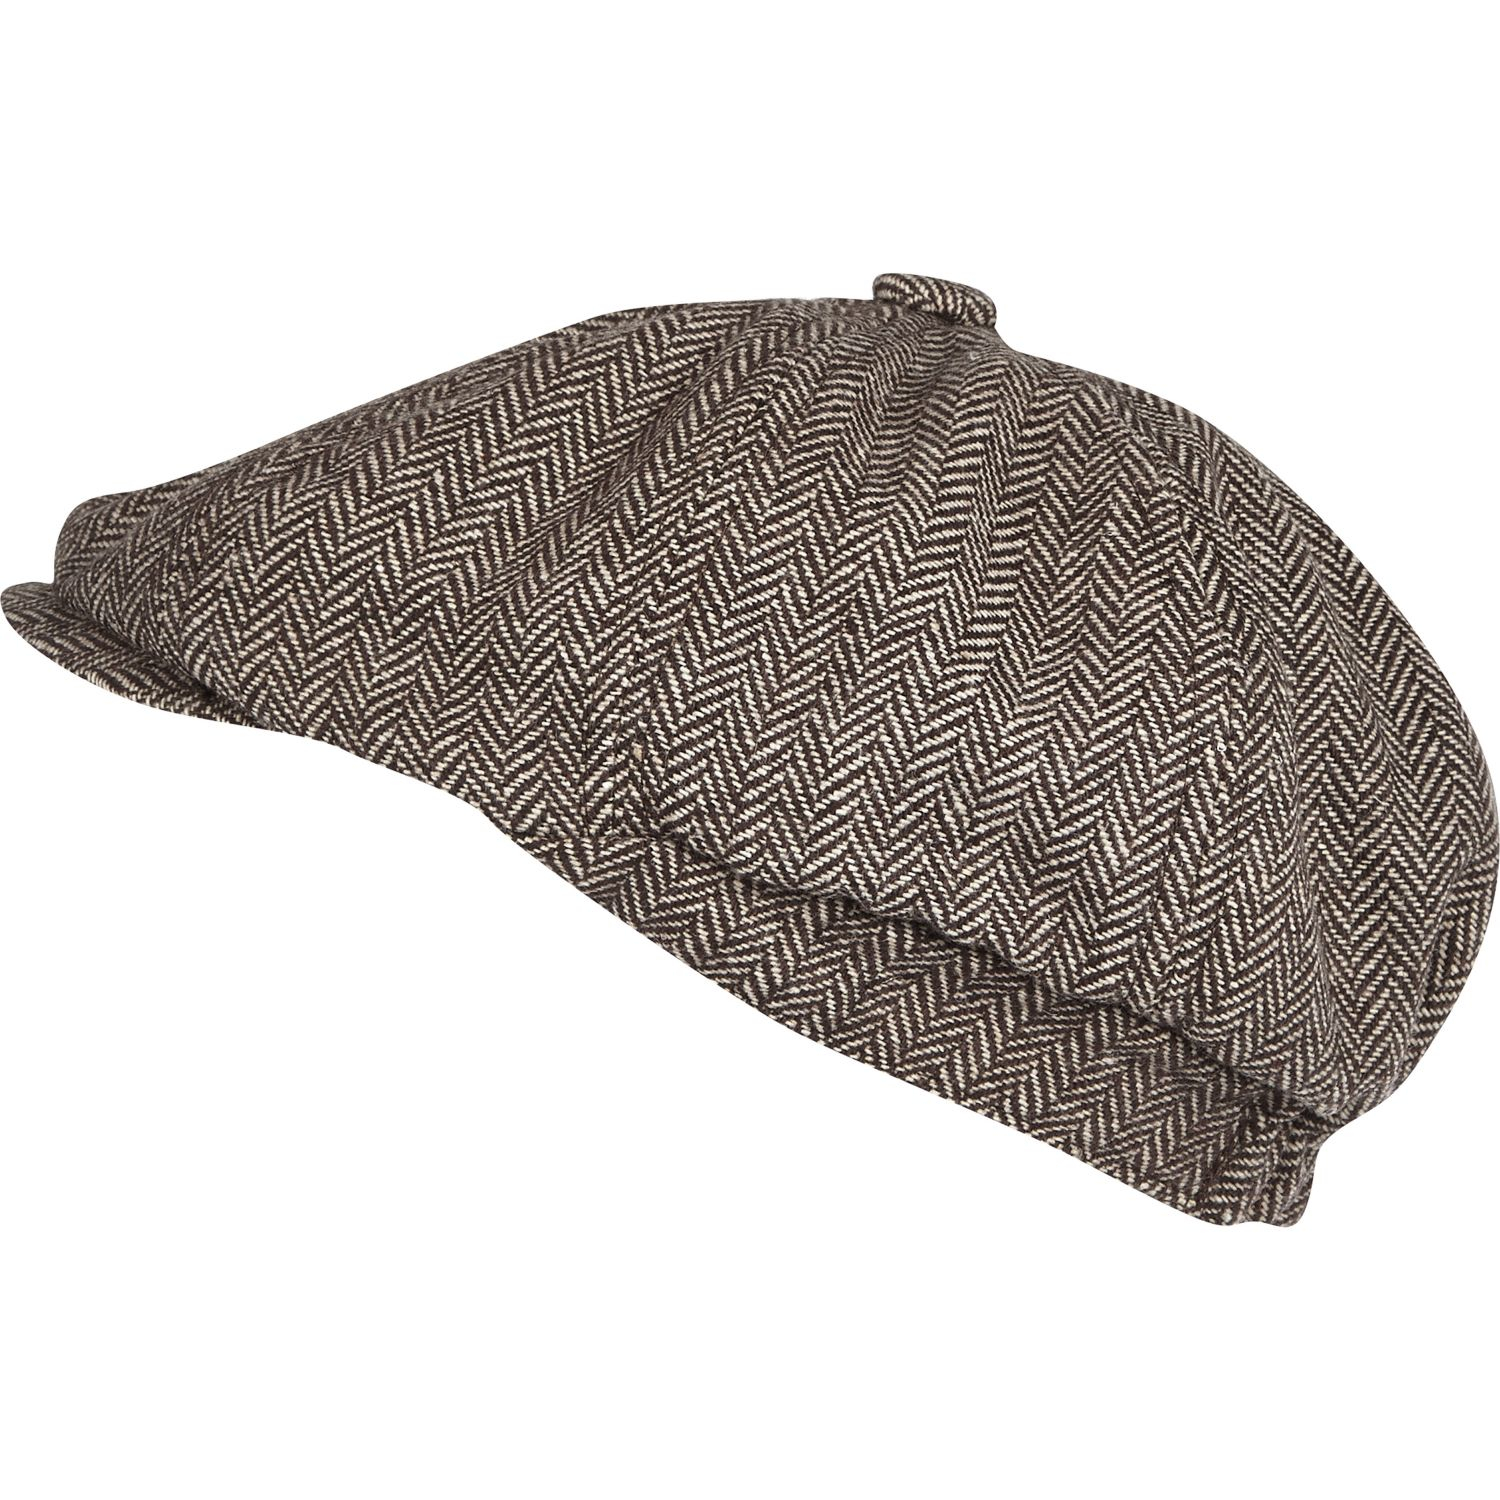 Lyst - River Island Brown Herringbone Baker Boy Hat in Brown for Men 2437a3f2a3a